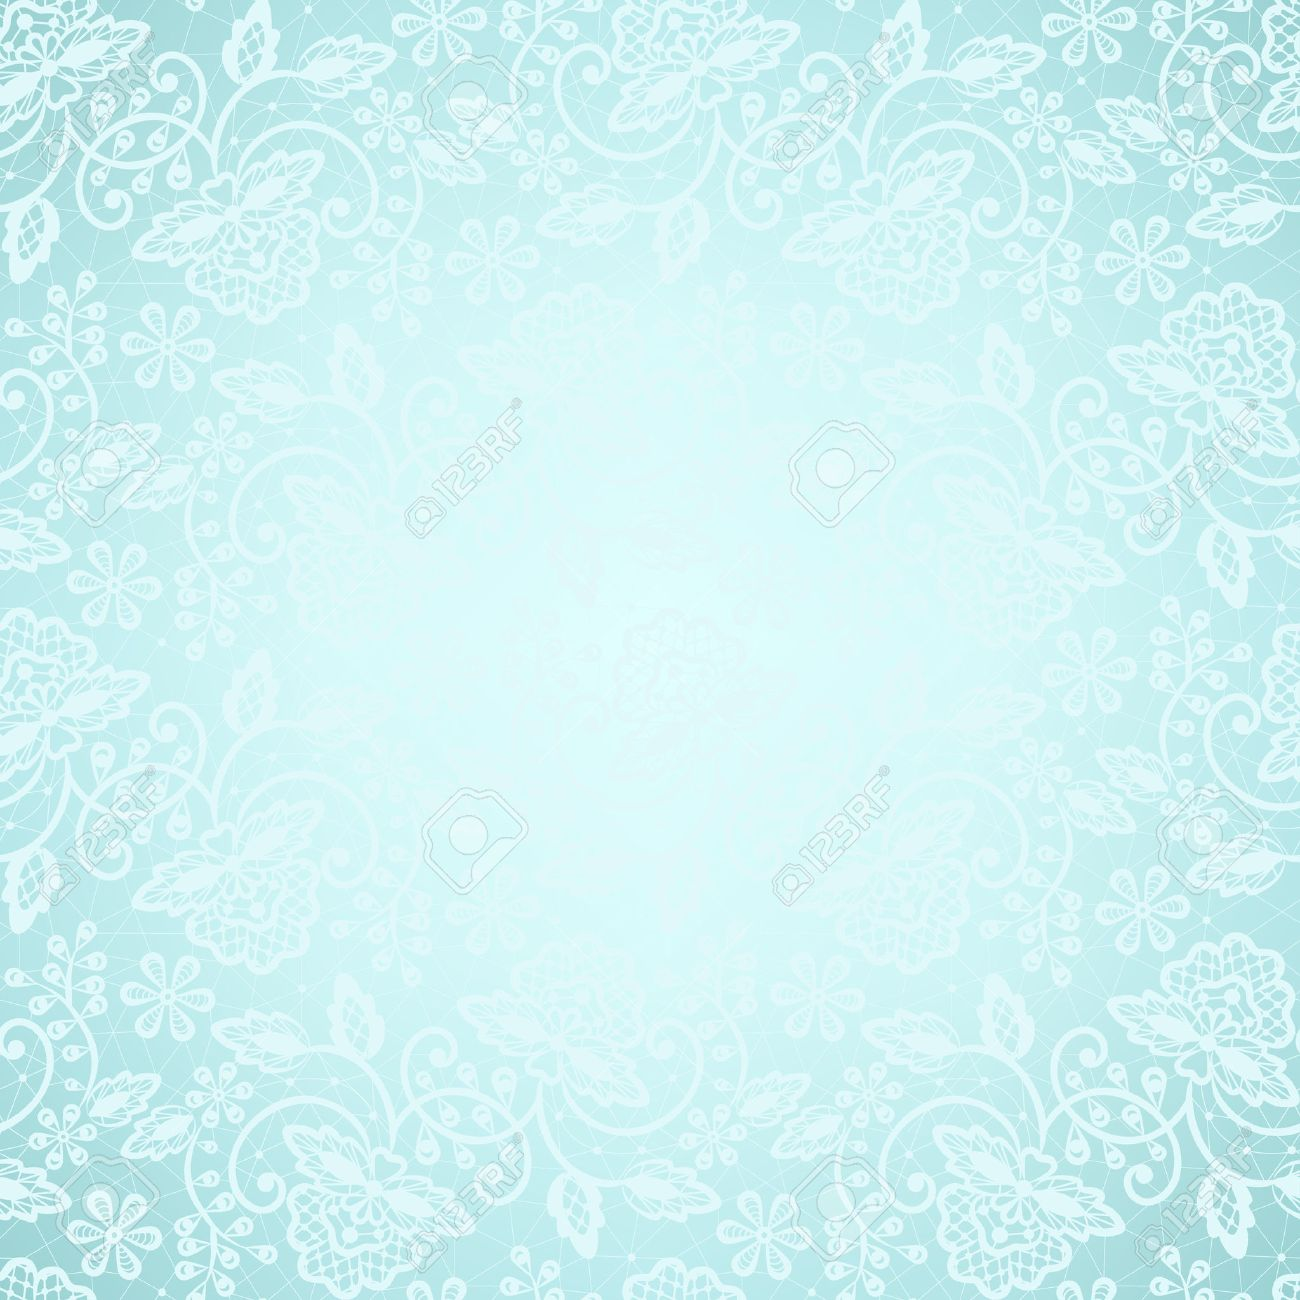 Template For Wedding Invitation Or Greeting Card With White Lace Frame On Blue Background Stock